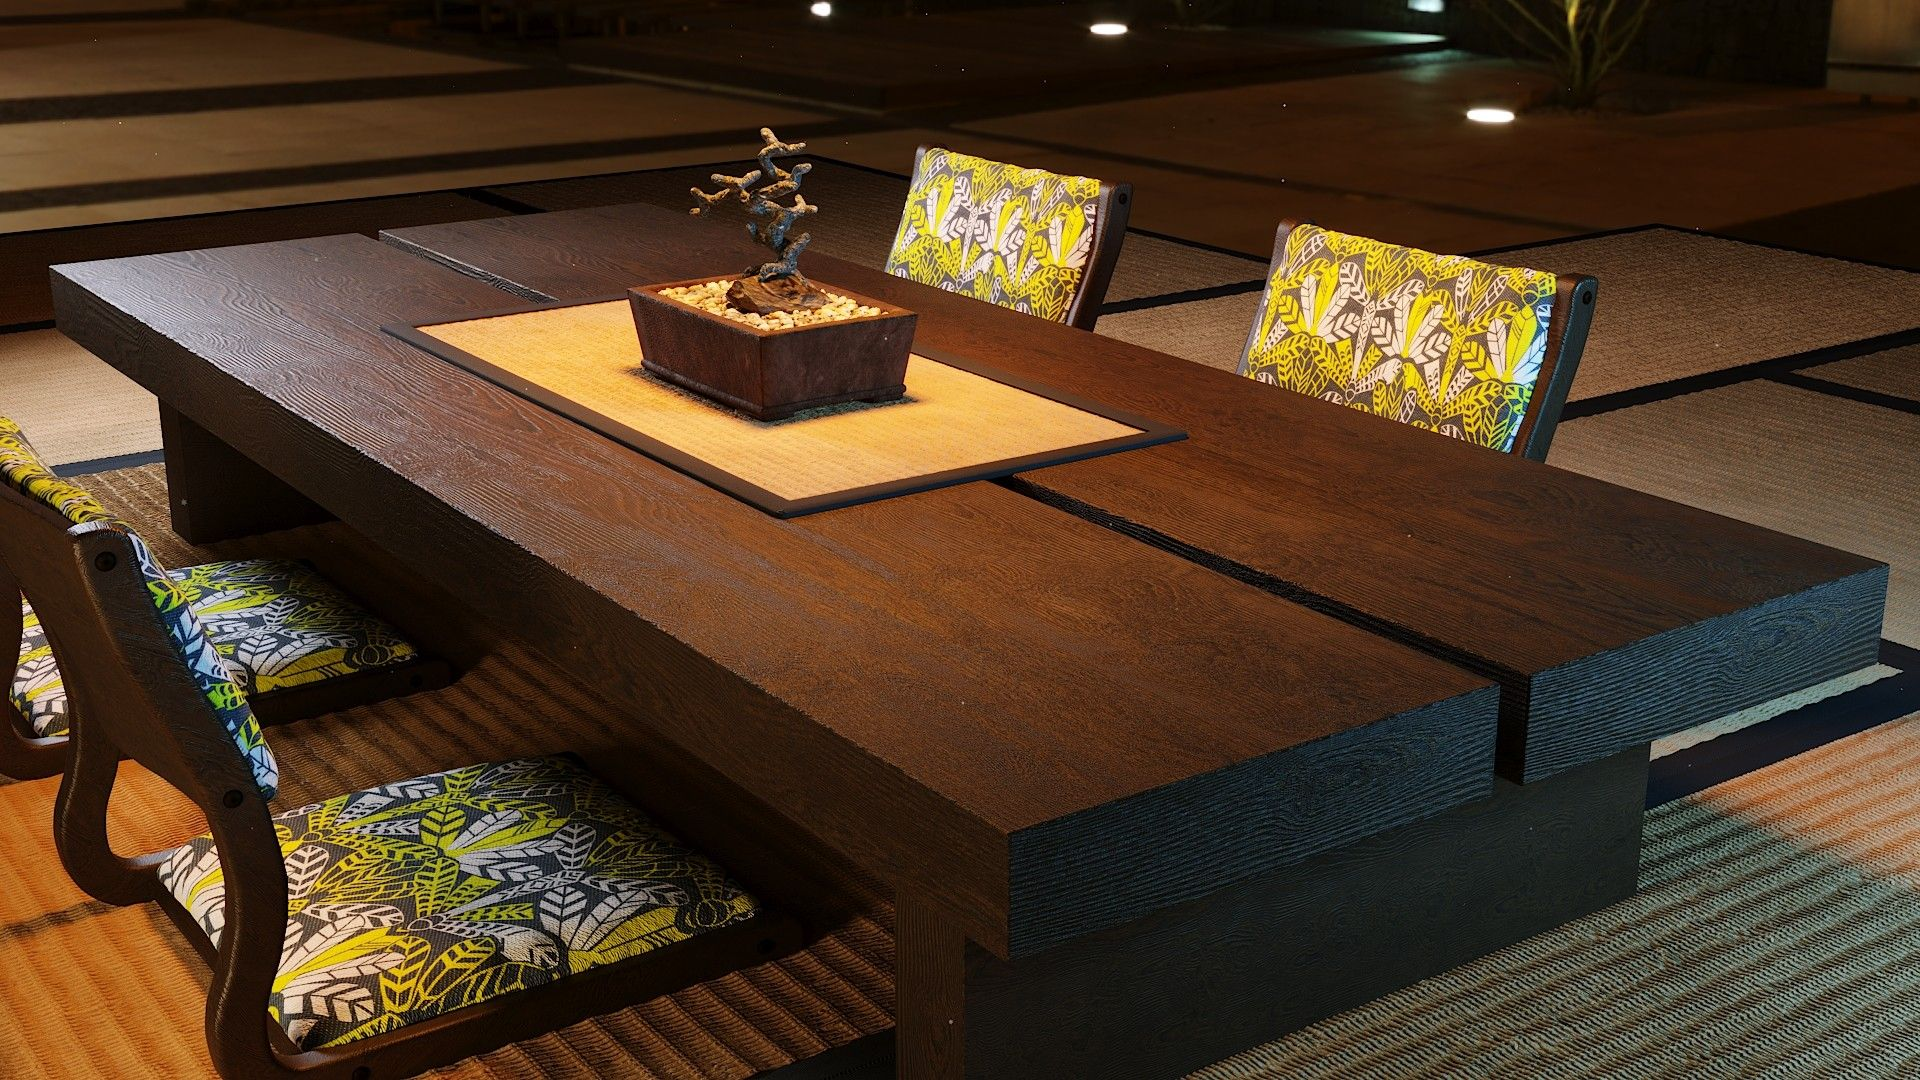 Pin by Ingrid on Living Room in 2020 | Japanese dining ...